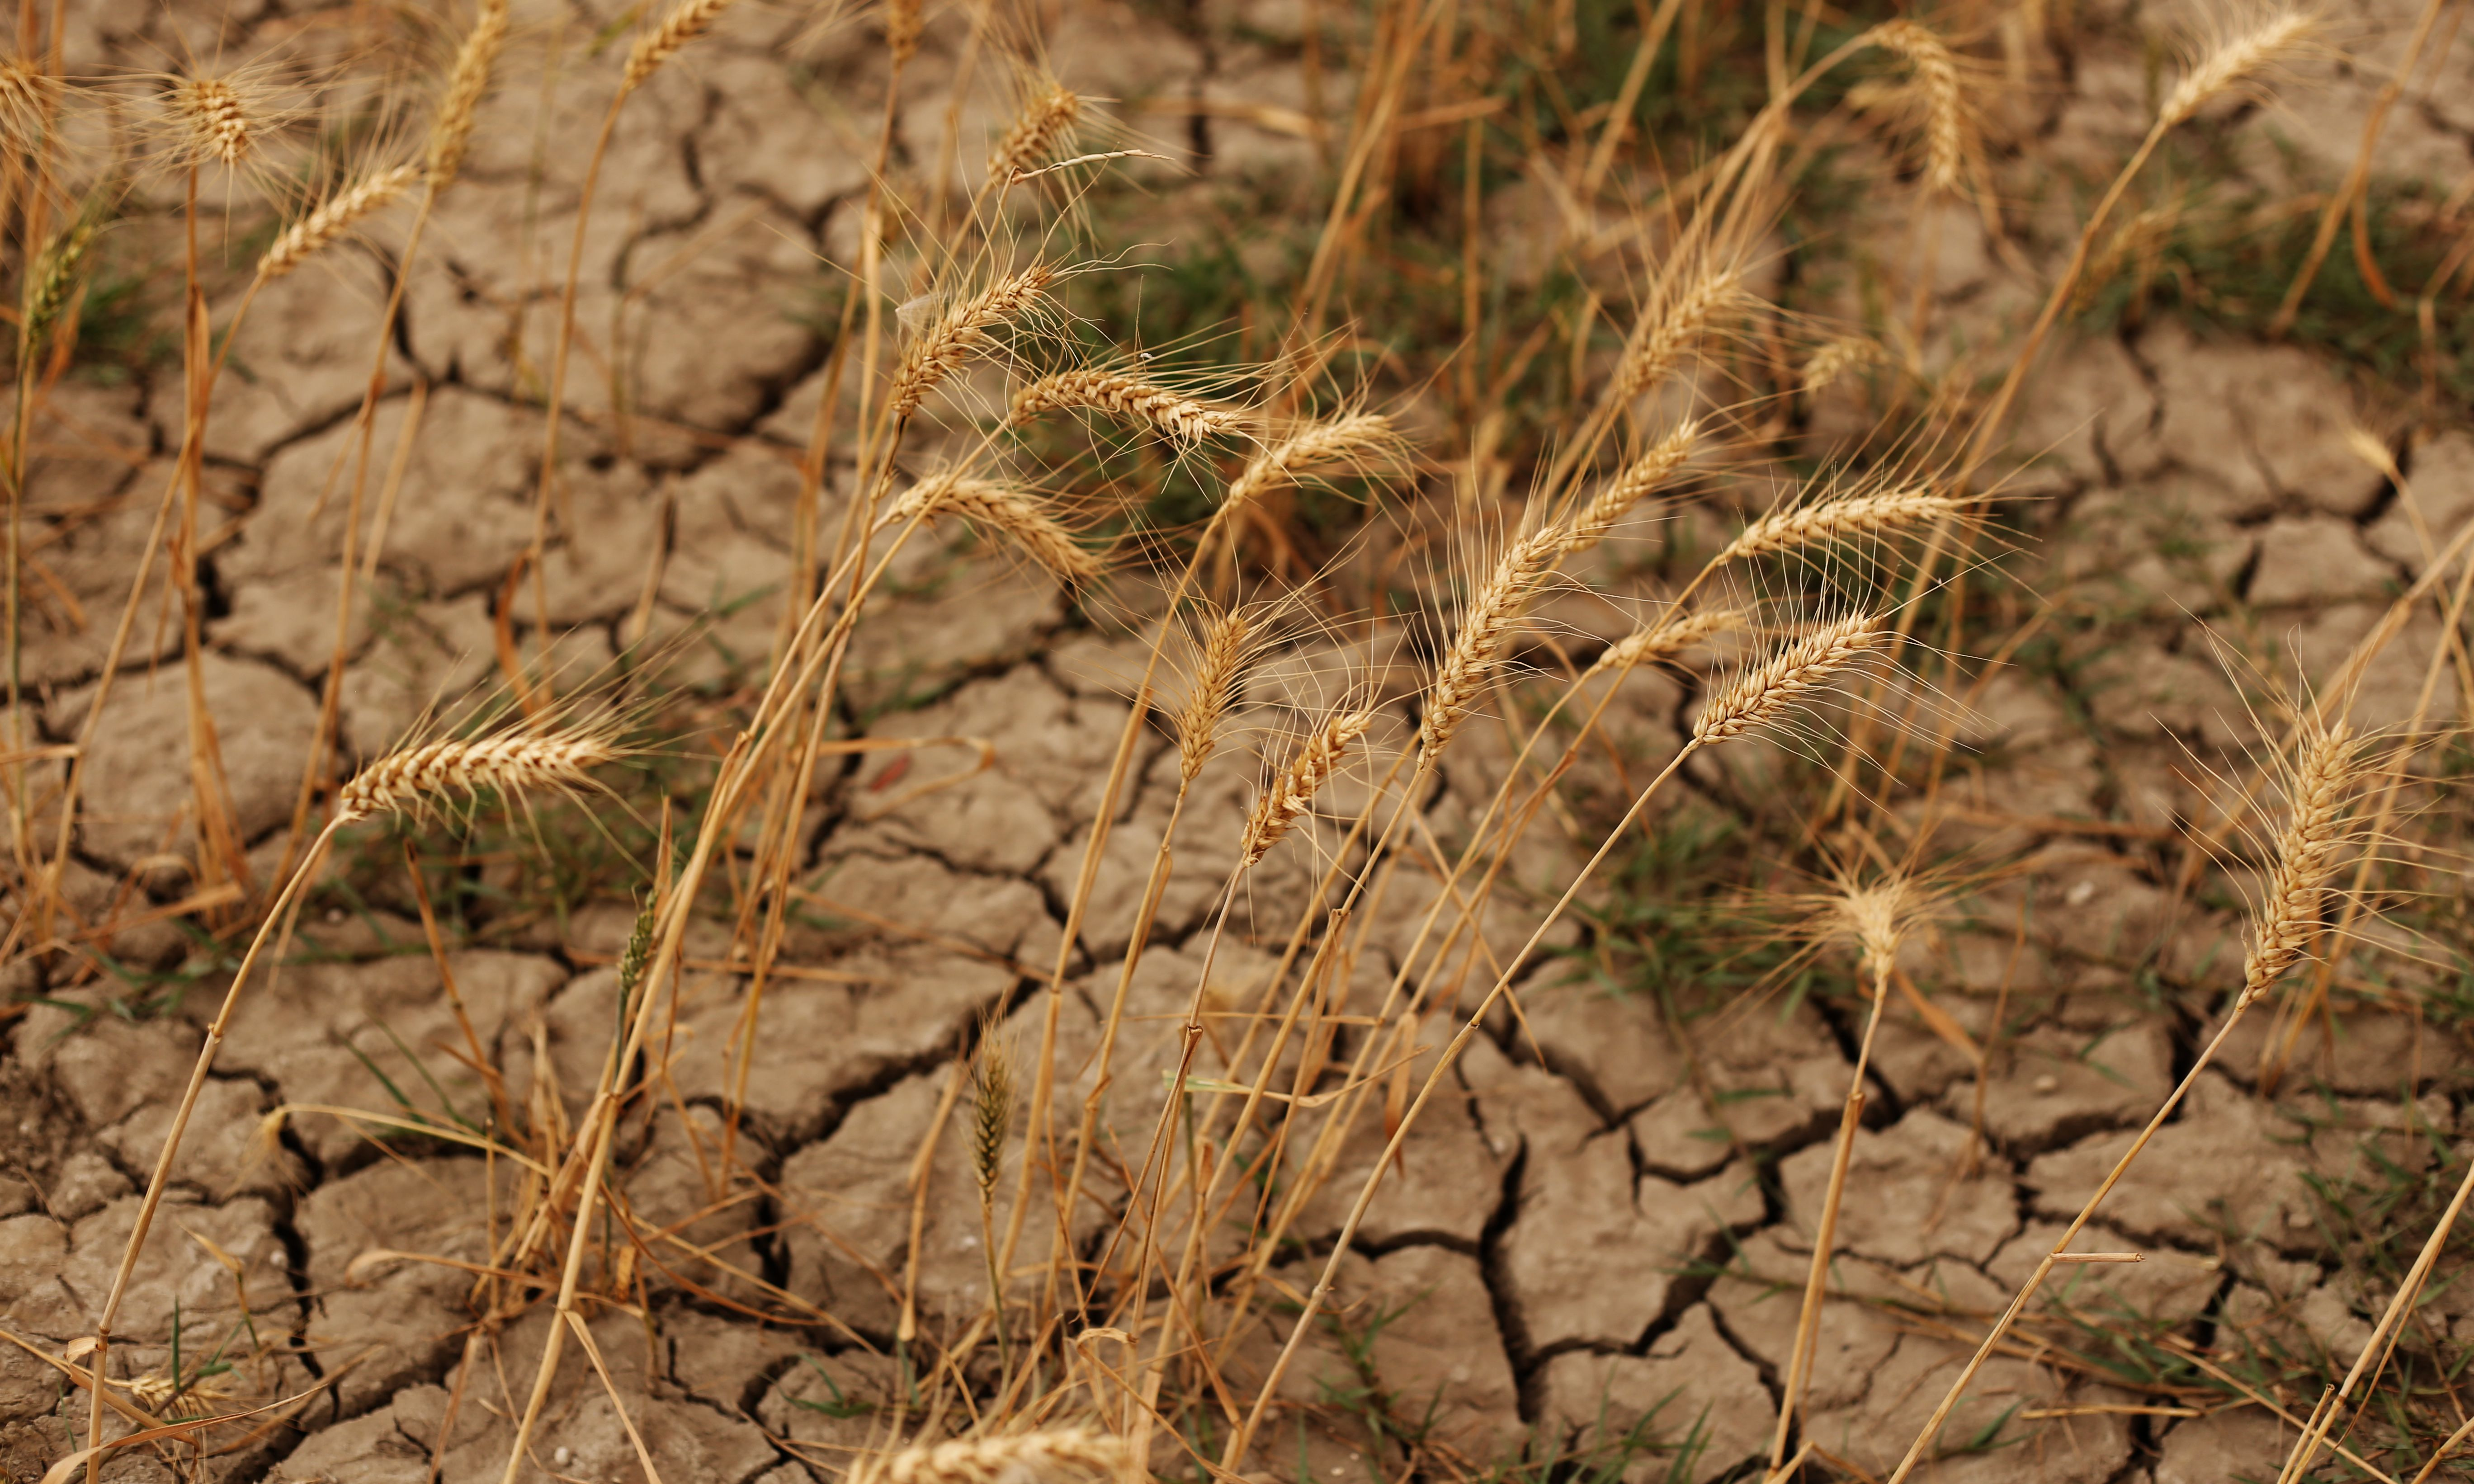 Global food production at risk of simultaneous heat waves across breadbasket regions